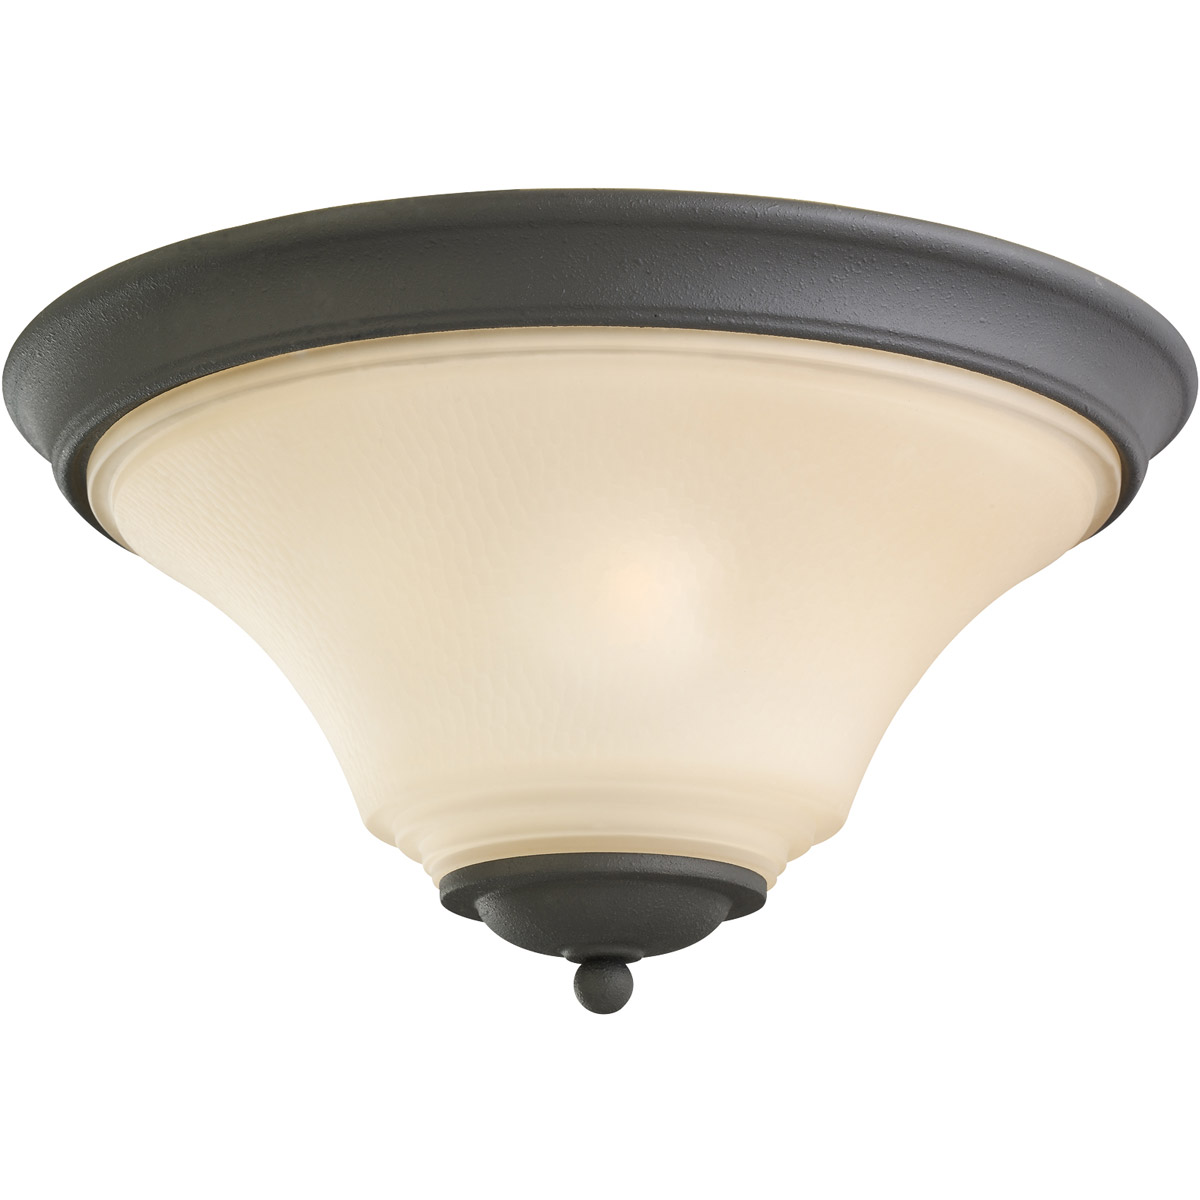 Sea Gull 75375-839 Somerton 2 Light 15 inch Blacksmith Flush Mount Ceiling Light in Cafe Tint Glass, Standard photo